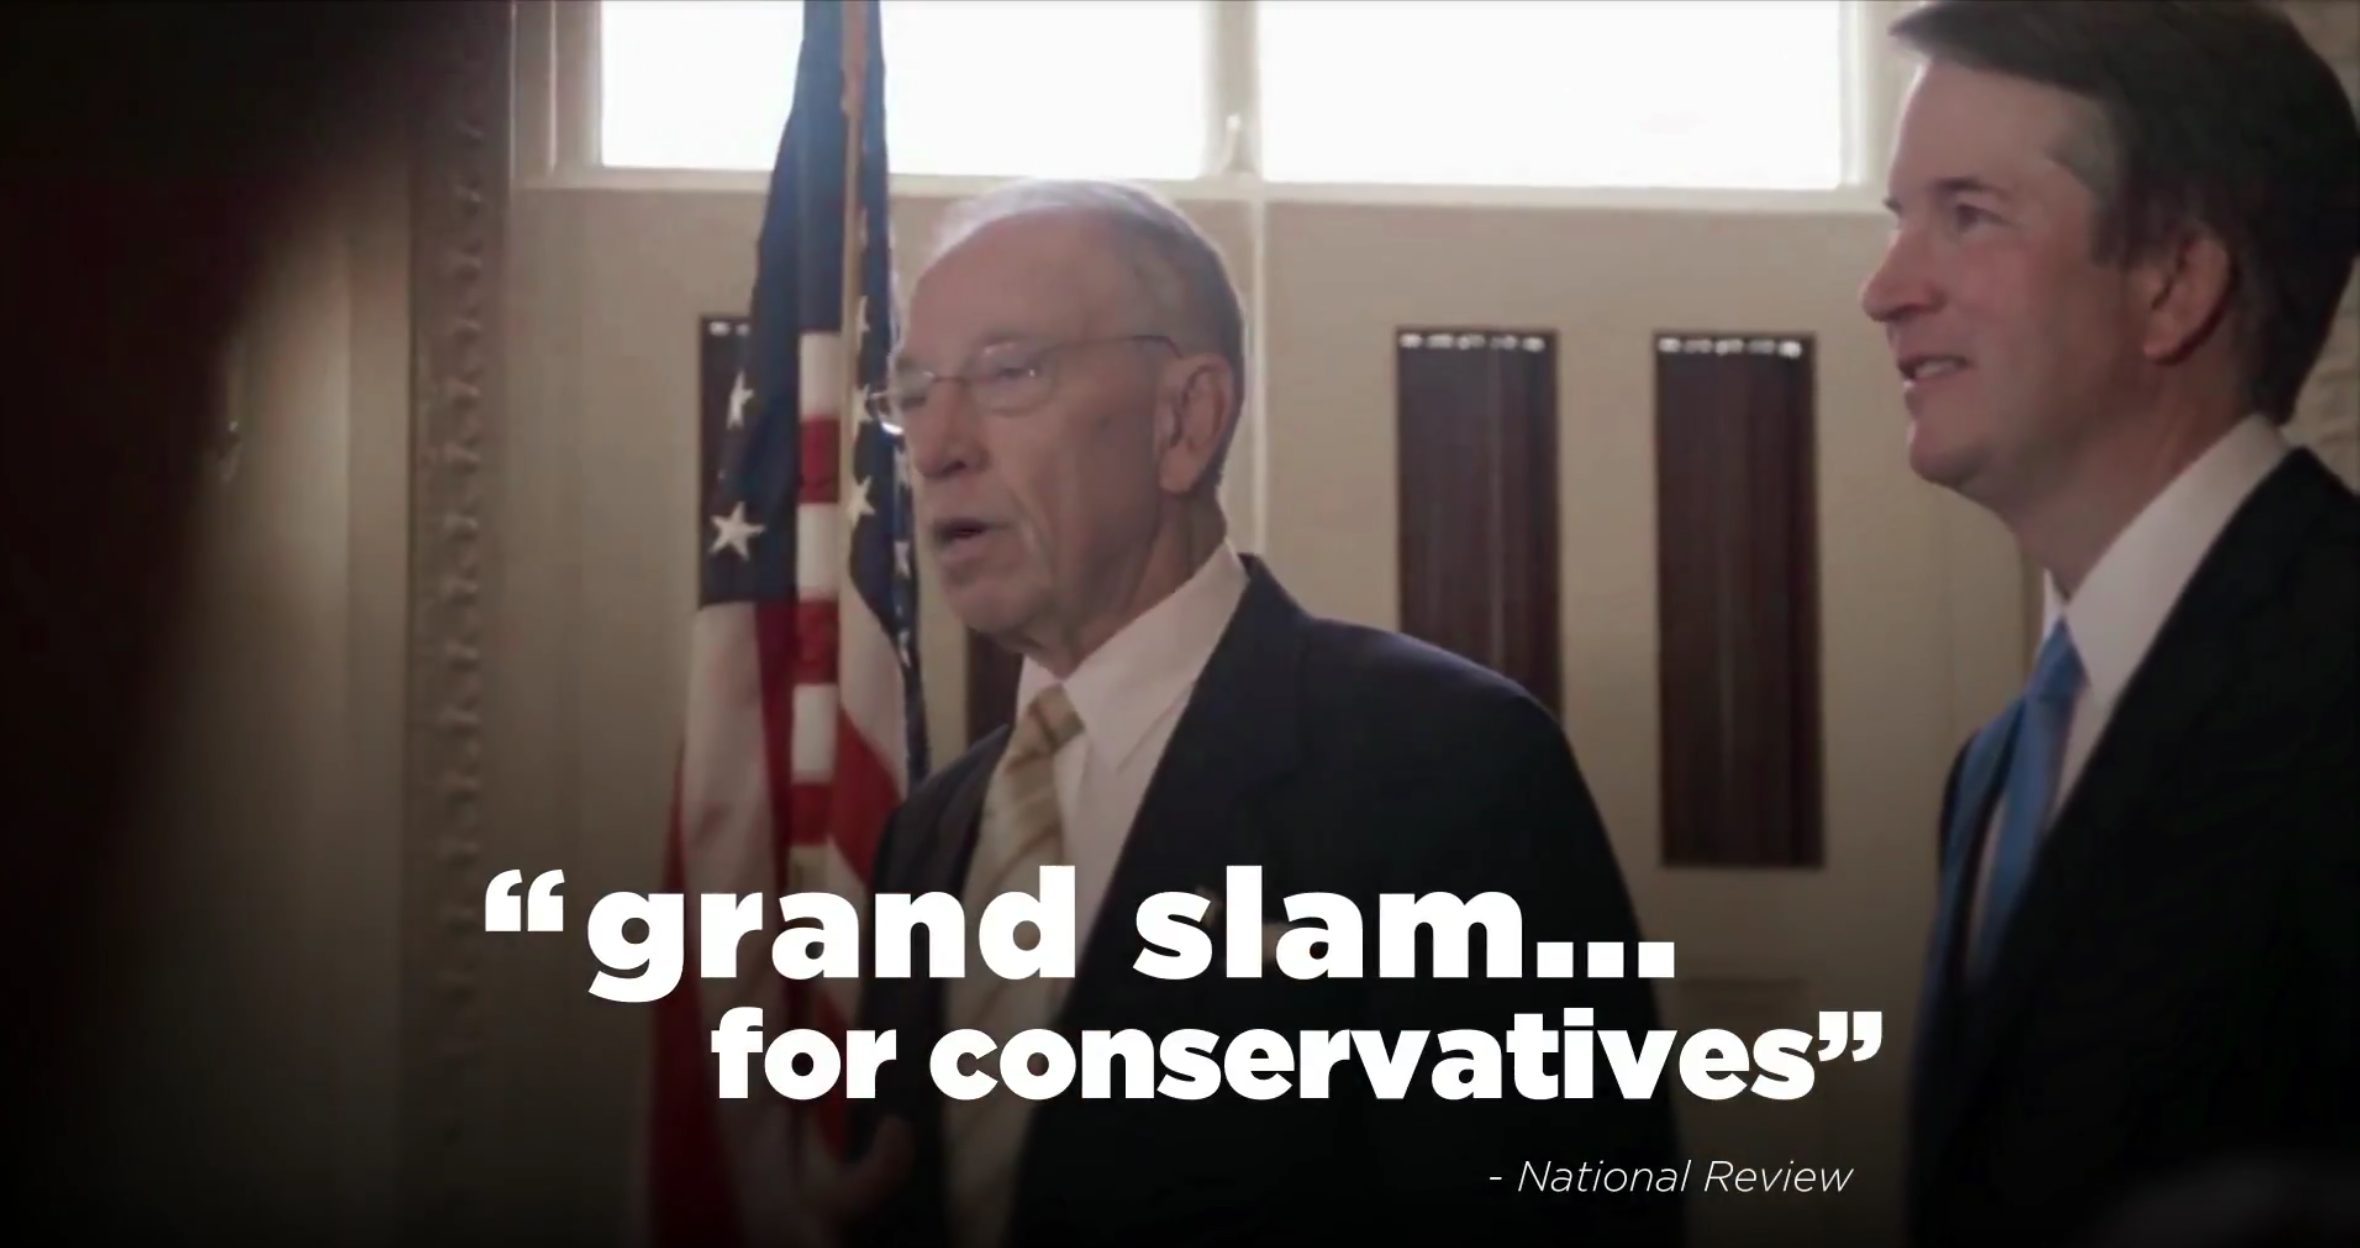 """Iowa Senator Chuck Grassley standing with Supreme Court Justice Nominee Brett Kavanaugh with the quote """"Grand slam for conservatives"""" from the National Review on the bottom"""